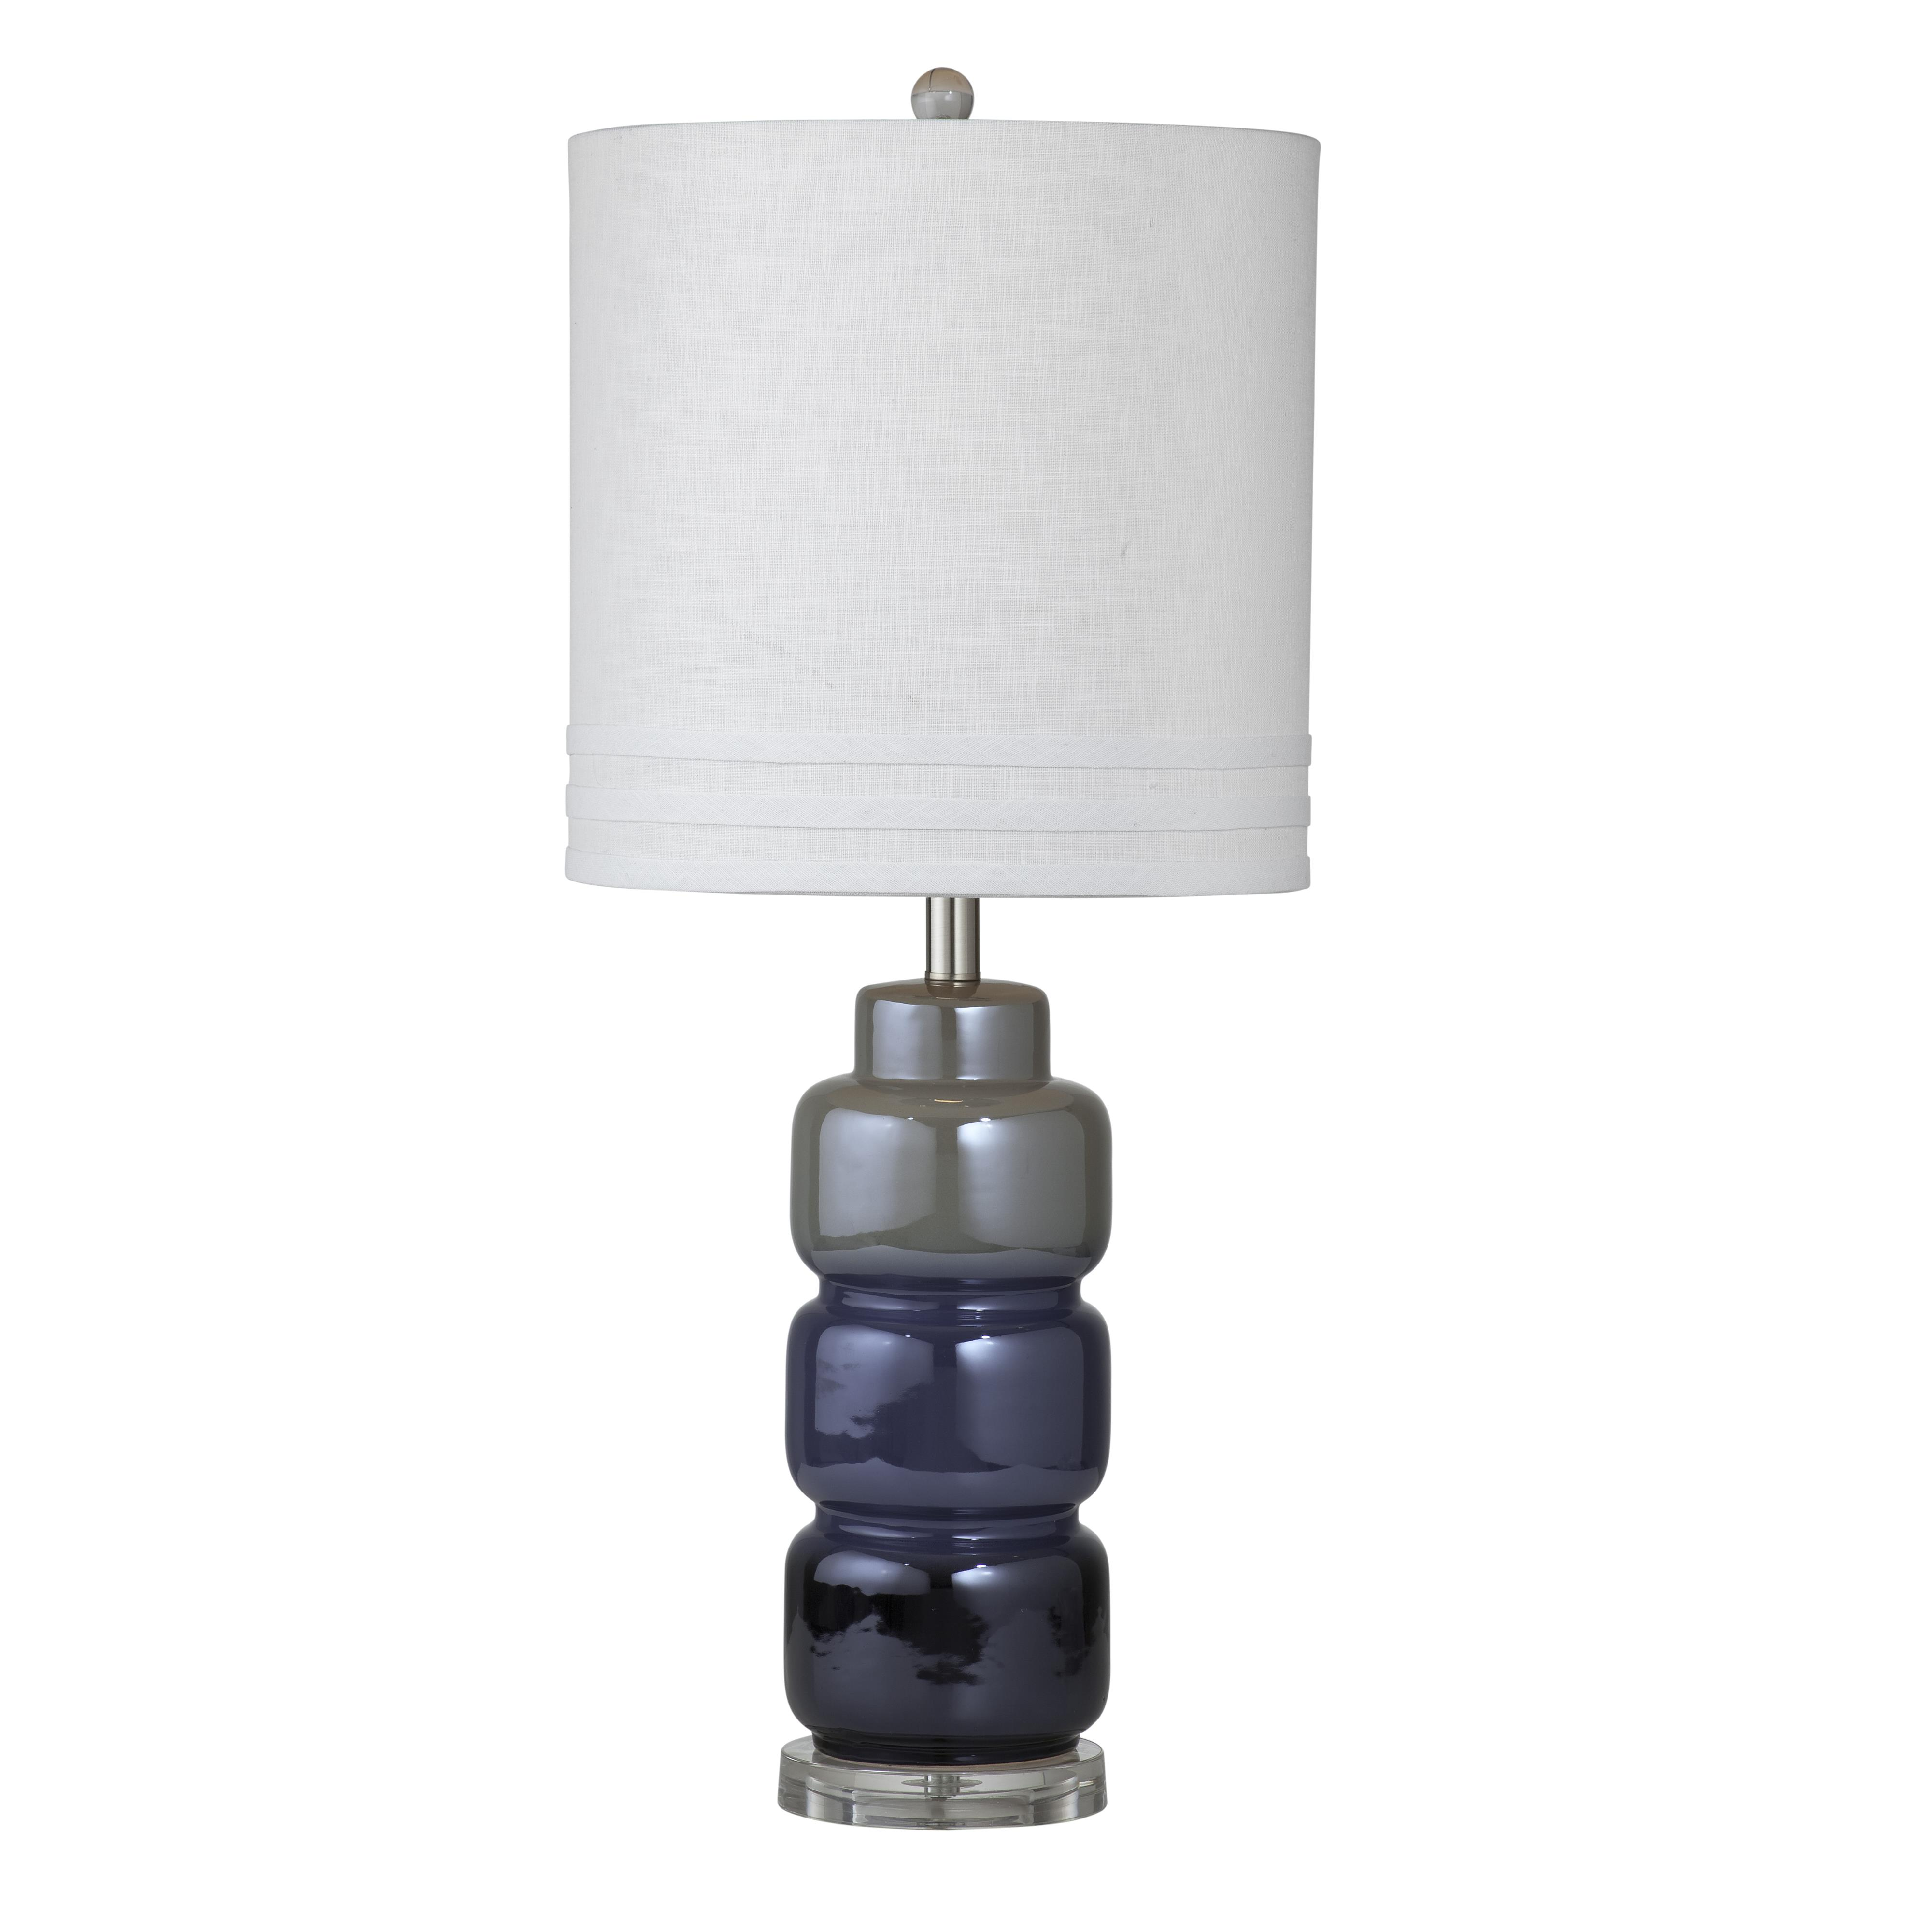 Thoroughly Modern Medina Table Lamp by Bassett Mirror at Alison Craig Home Furnishings